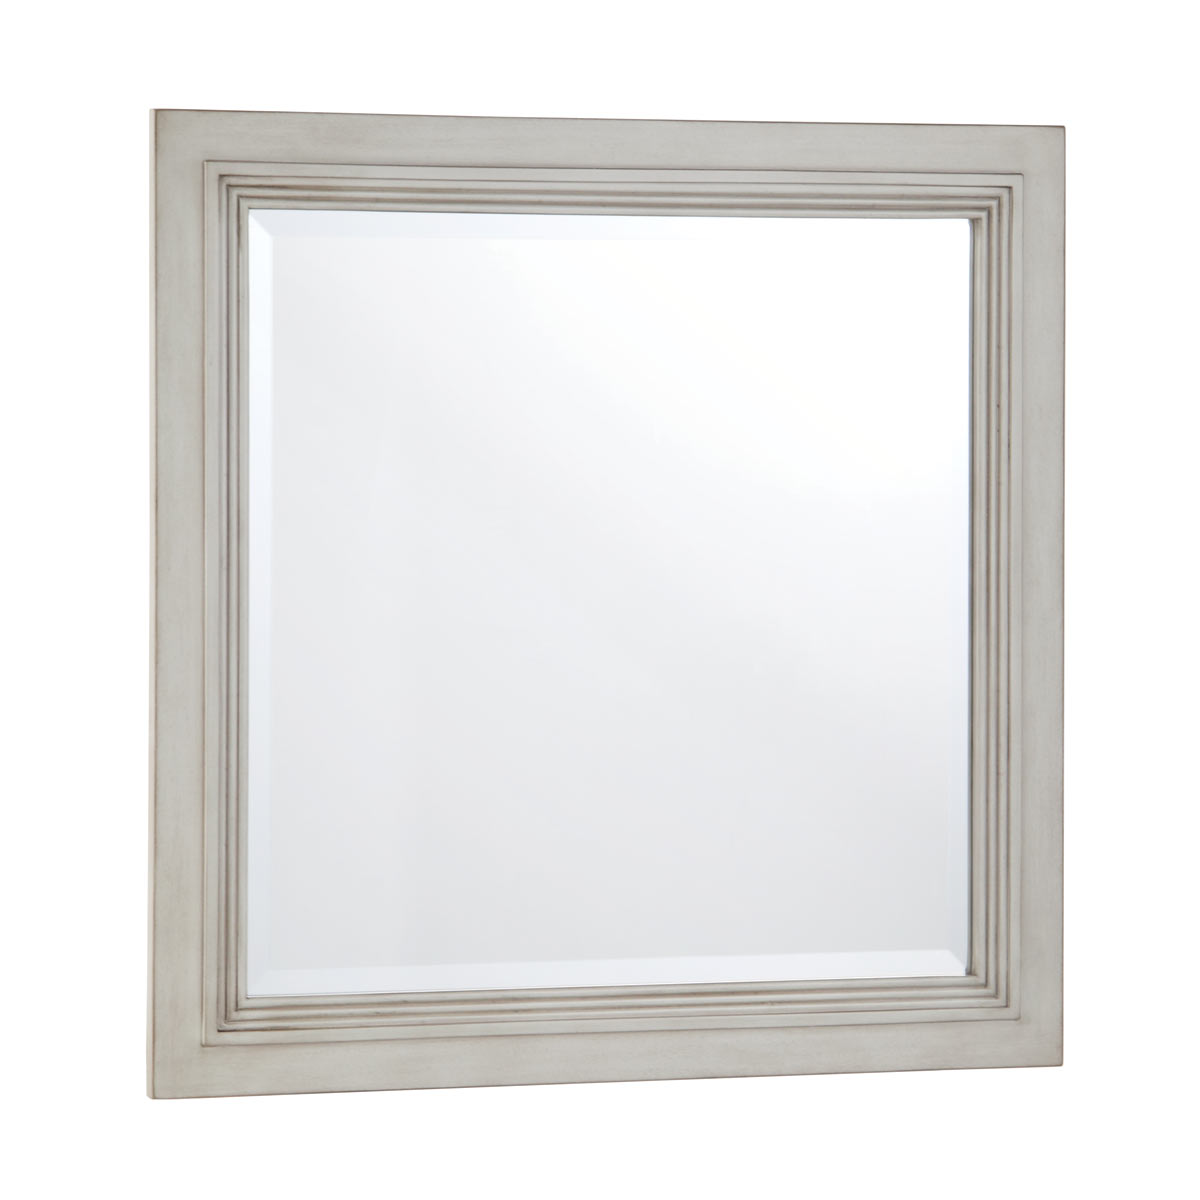 4mm china squar glass mirror manufacturer custom design for Glass mirrors for bathrooms